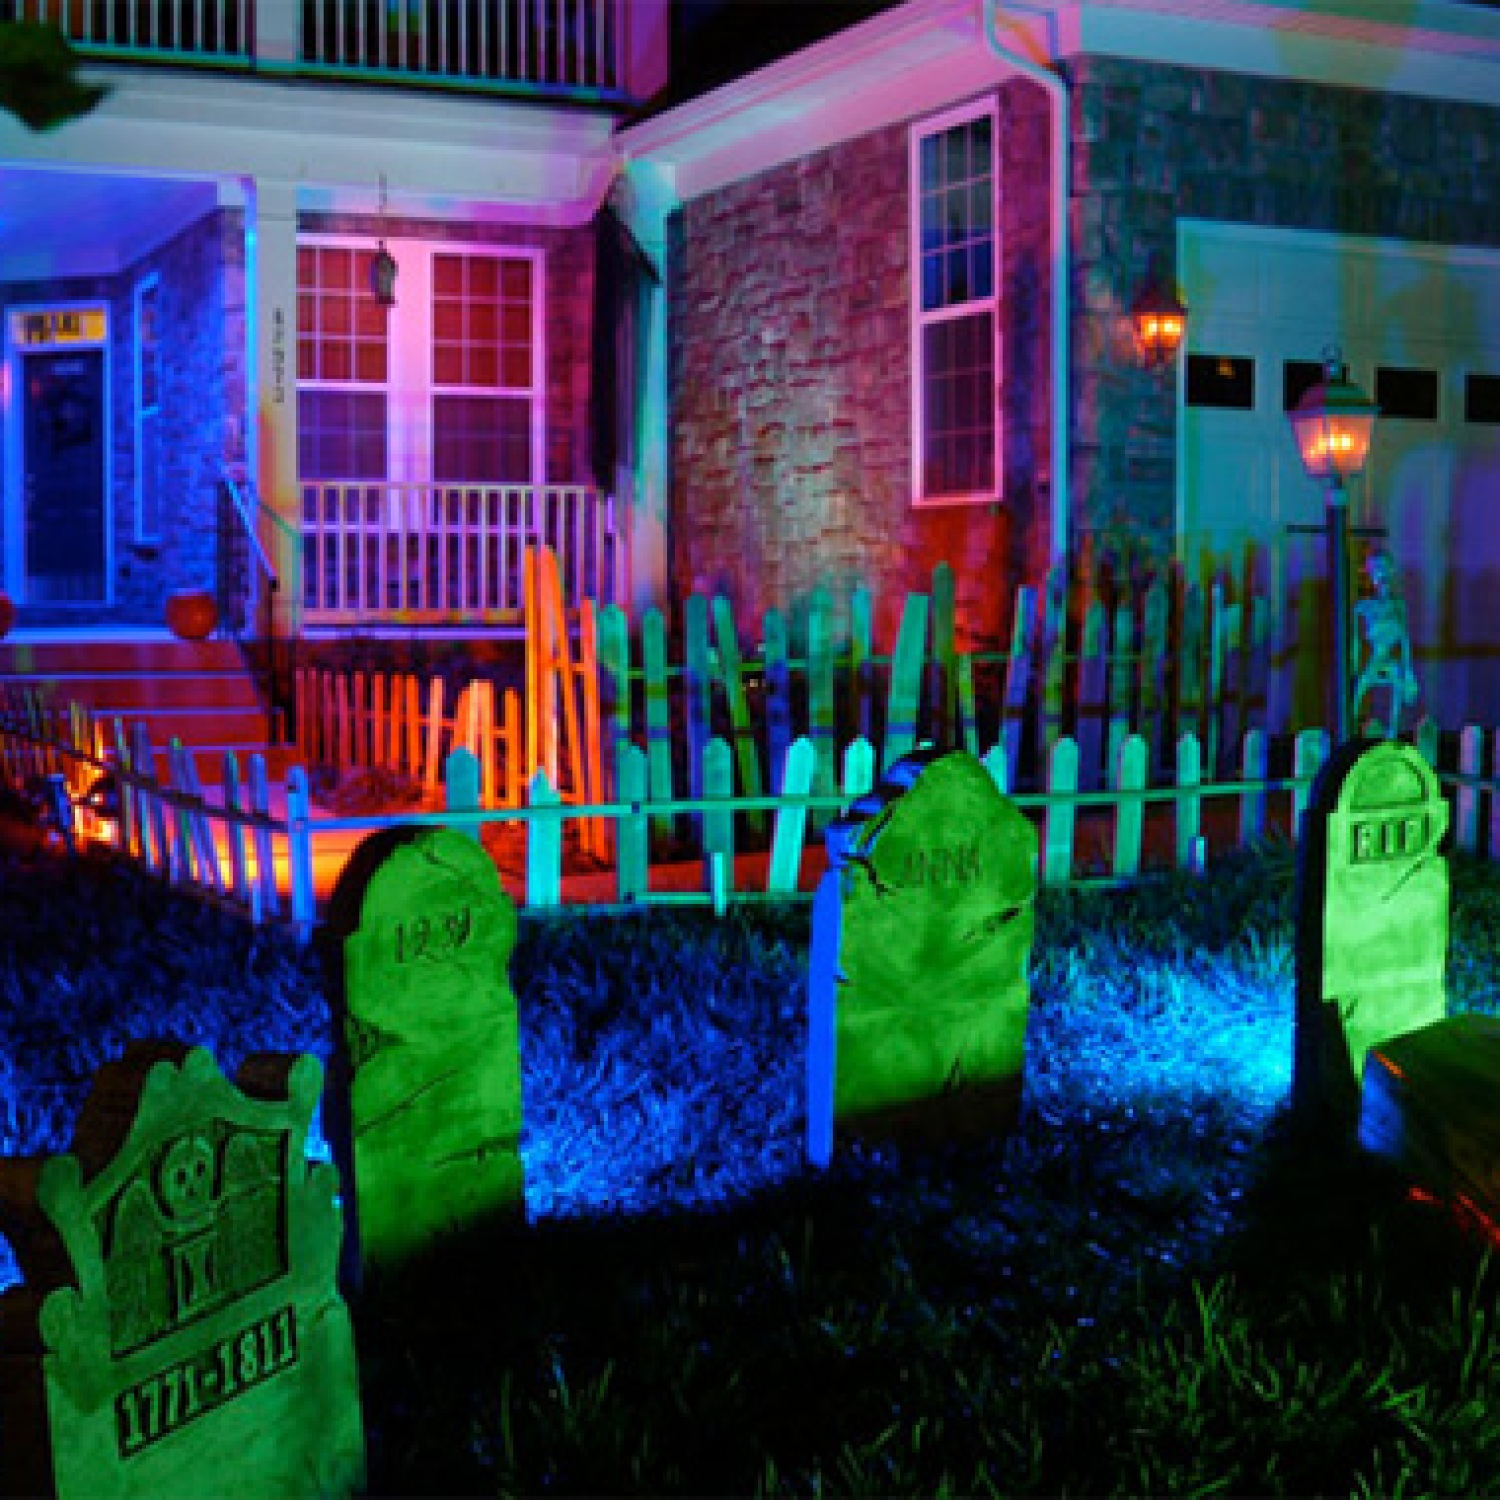 Outdoor Halloween Decorations and Lights to Spook Out Your House